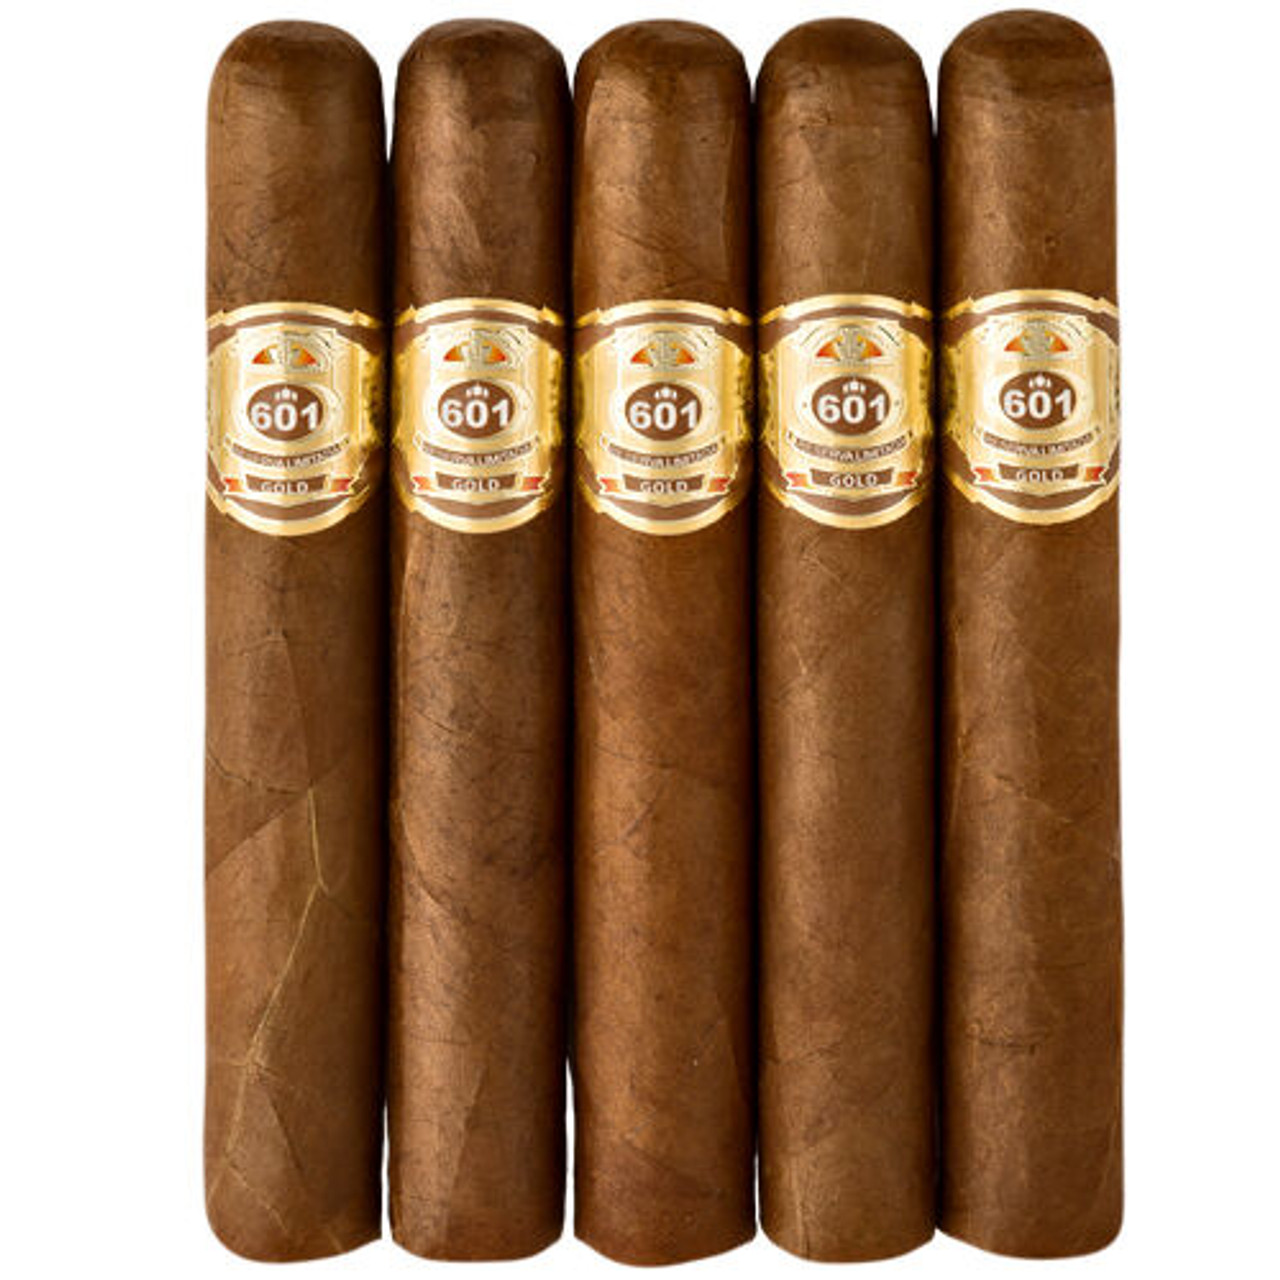 601 Gold Label Gordo Cigars - 6 x 60 (Pack of 5)